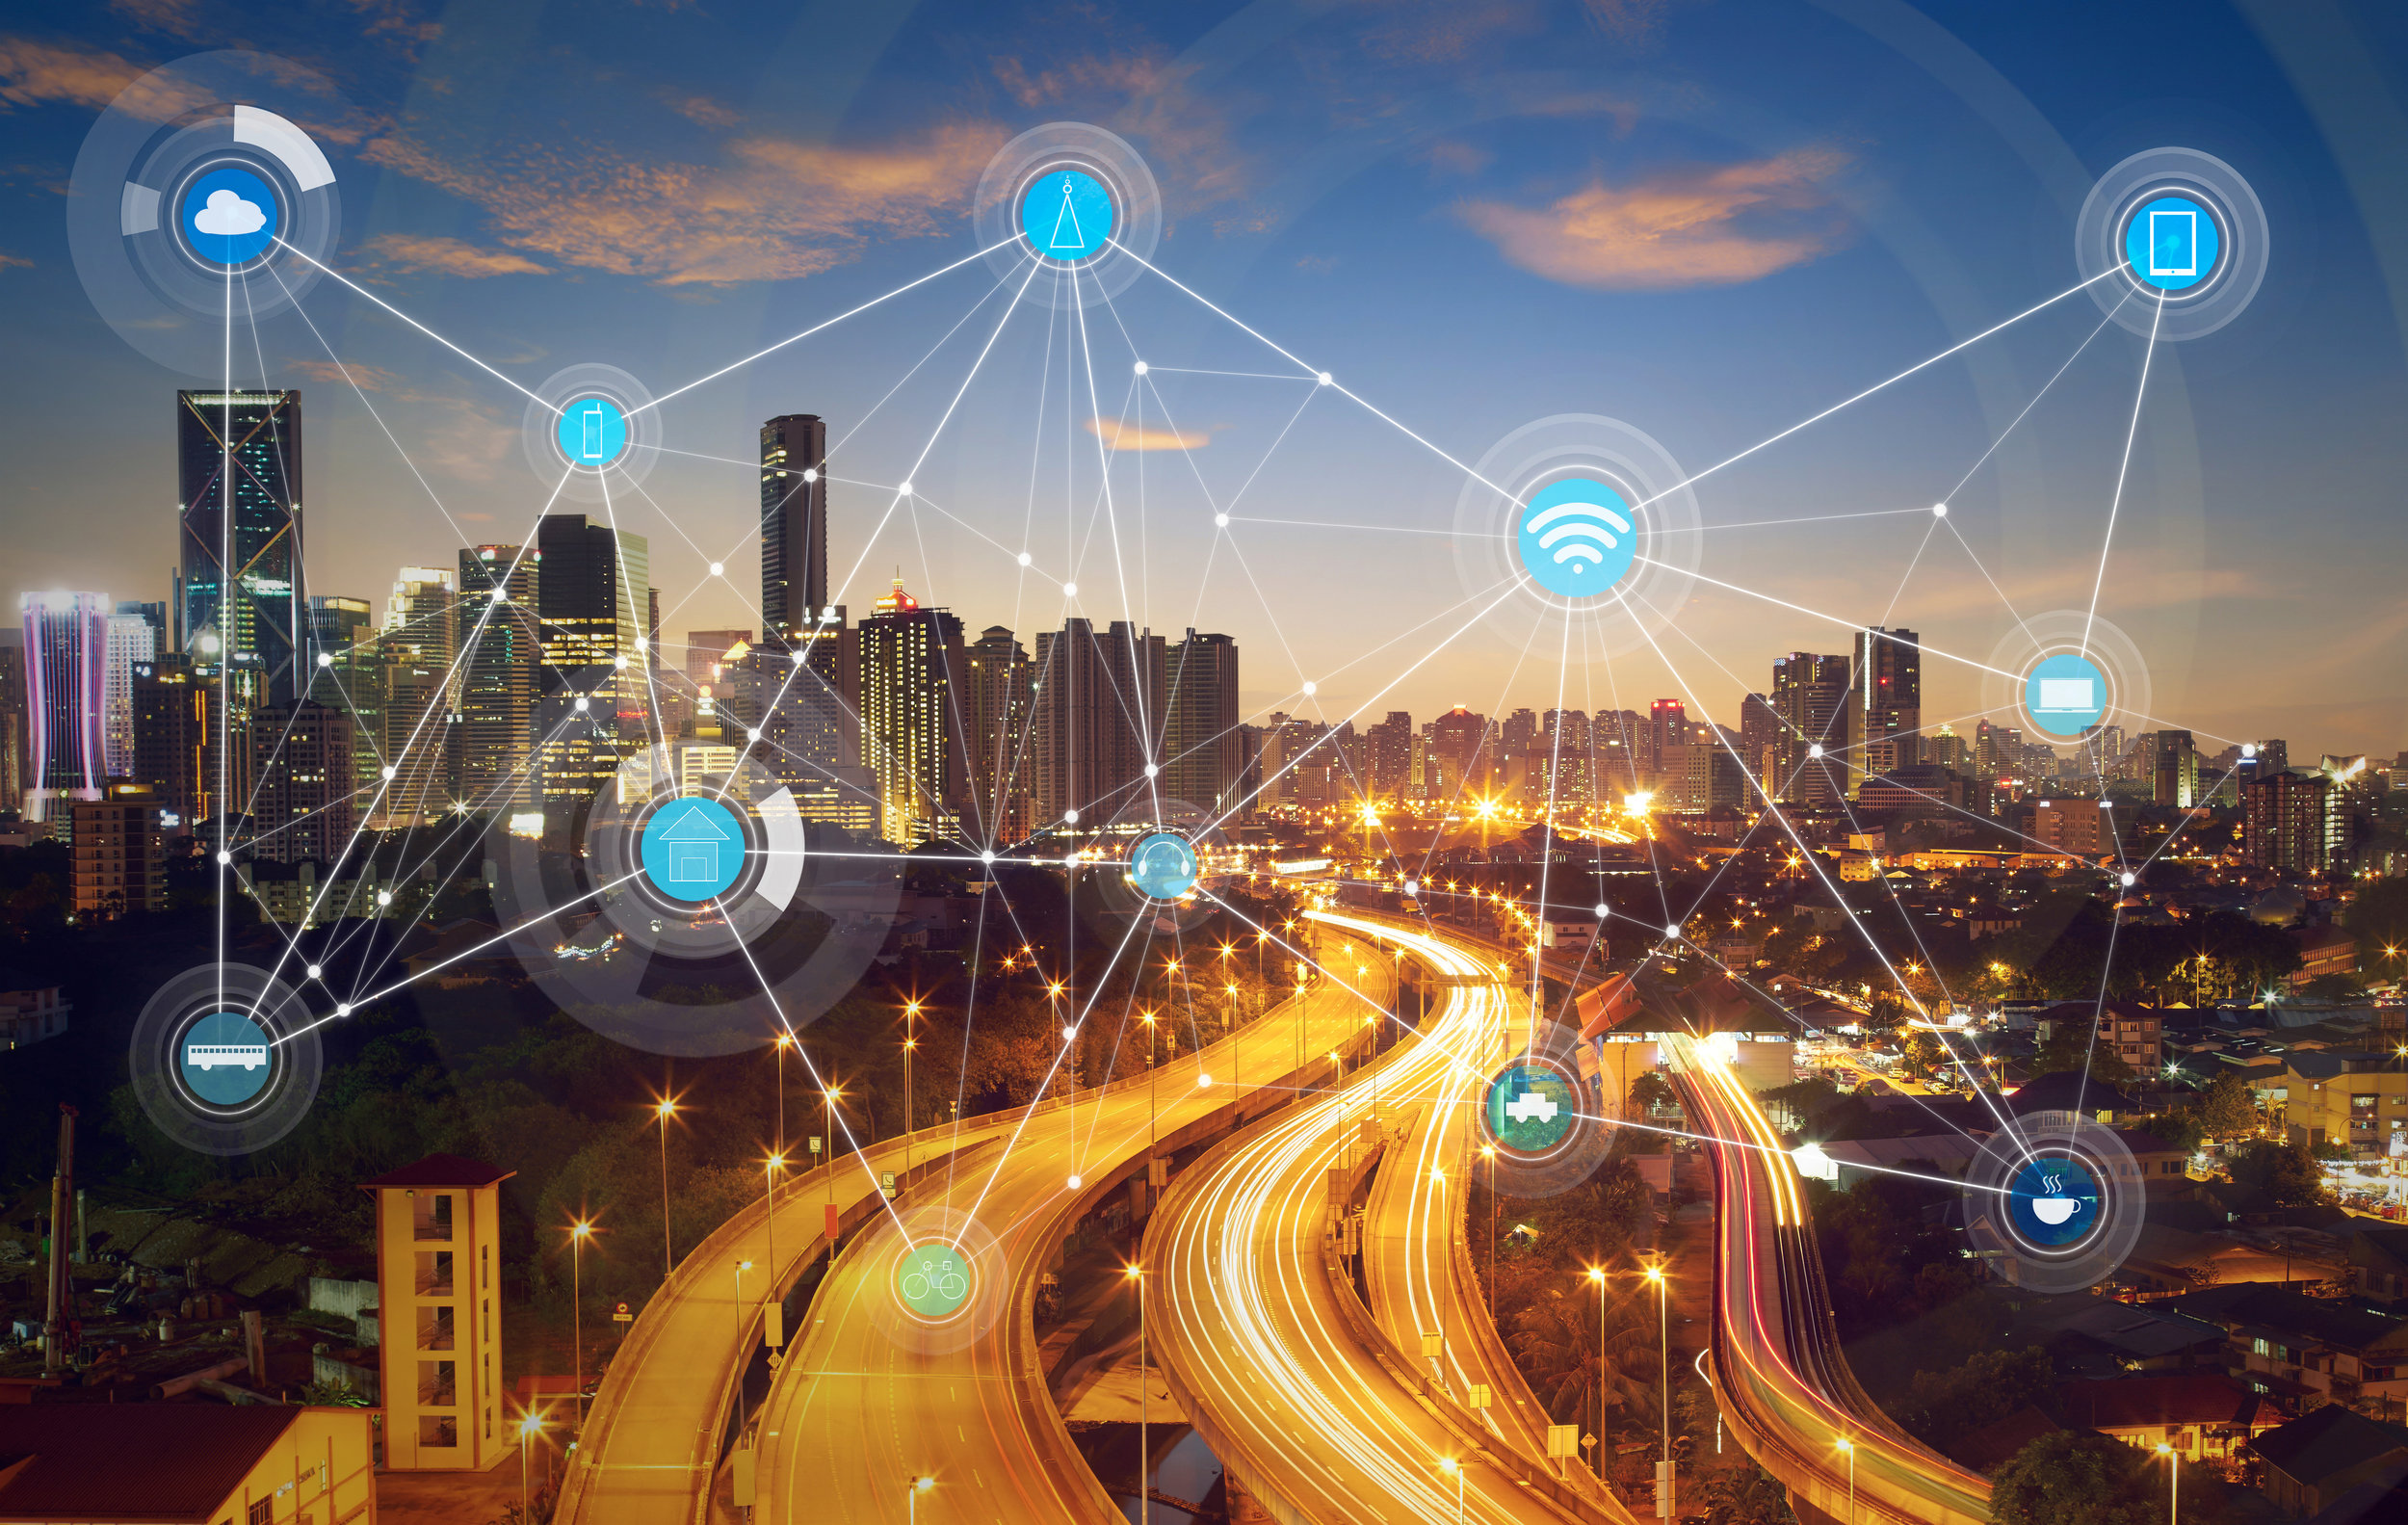 smartcityandwirelesscommunicationnetworkabstractimagevisualinternetofthings.jpg